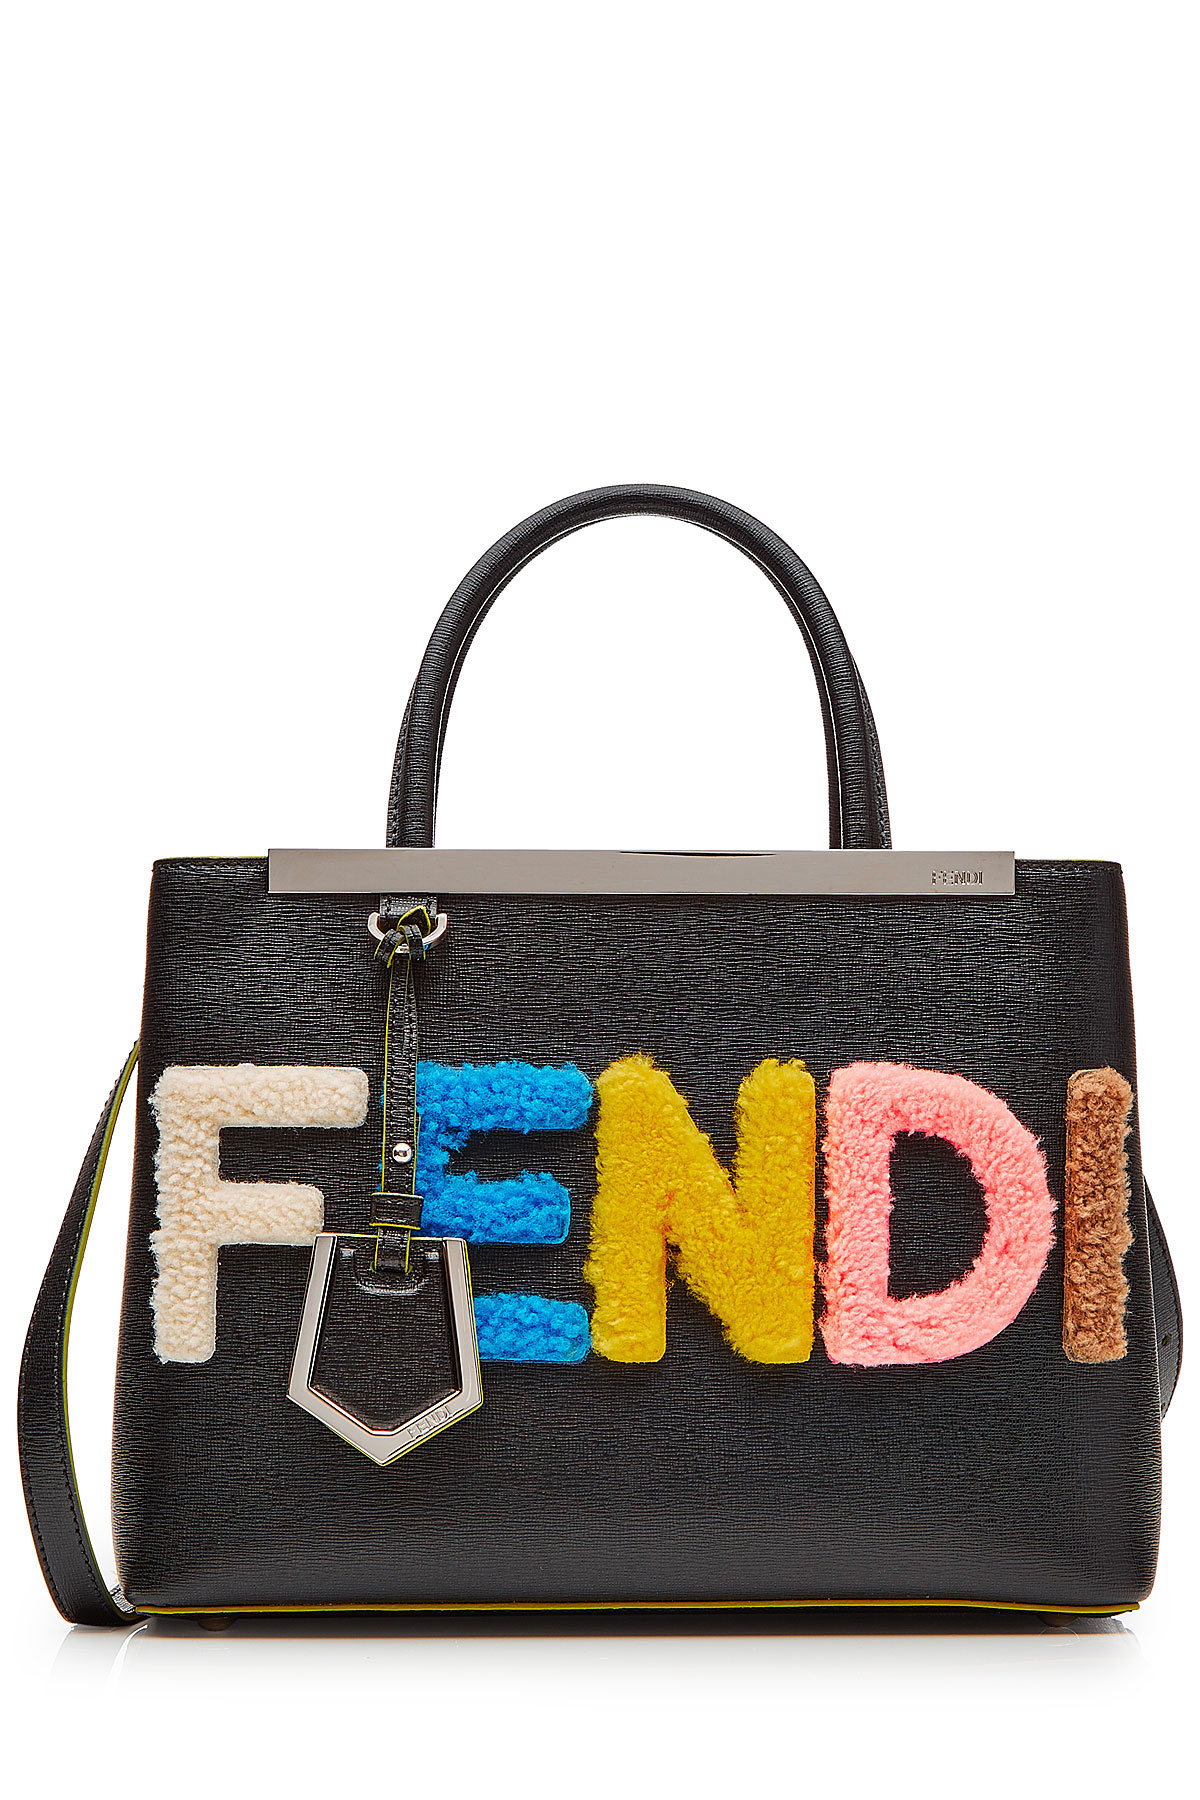 09a430757c31 Gallery. Previously sold at  STYLEBOP.com · Women s Shearling Bags Women s  Fendi ...